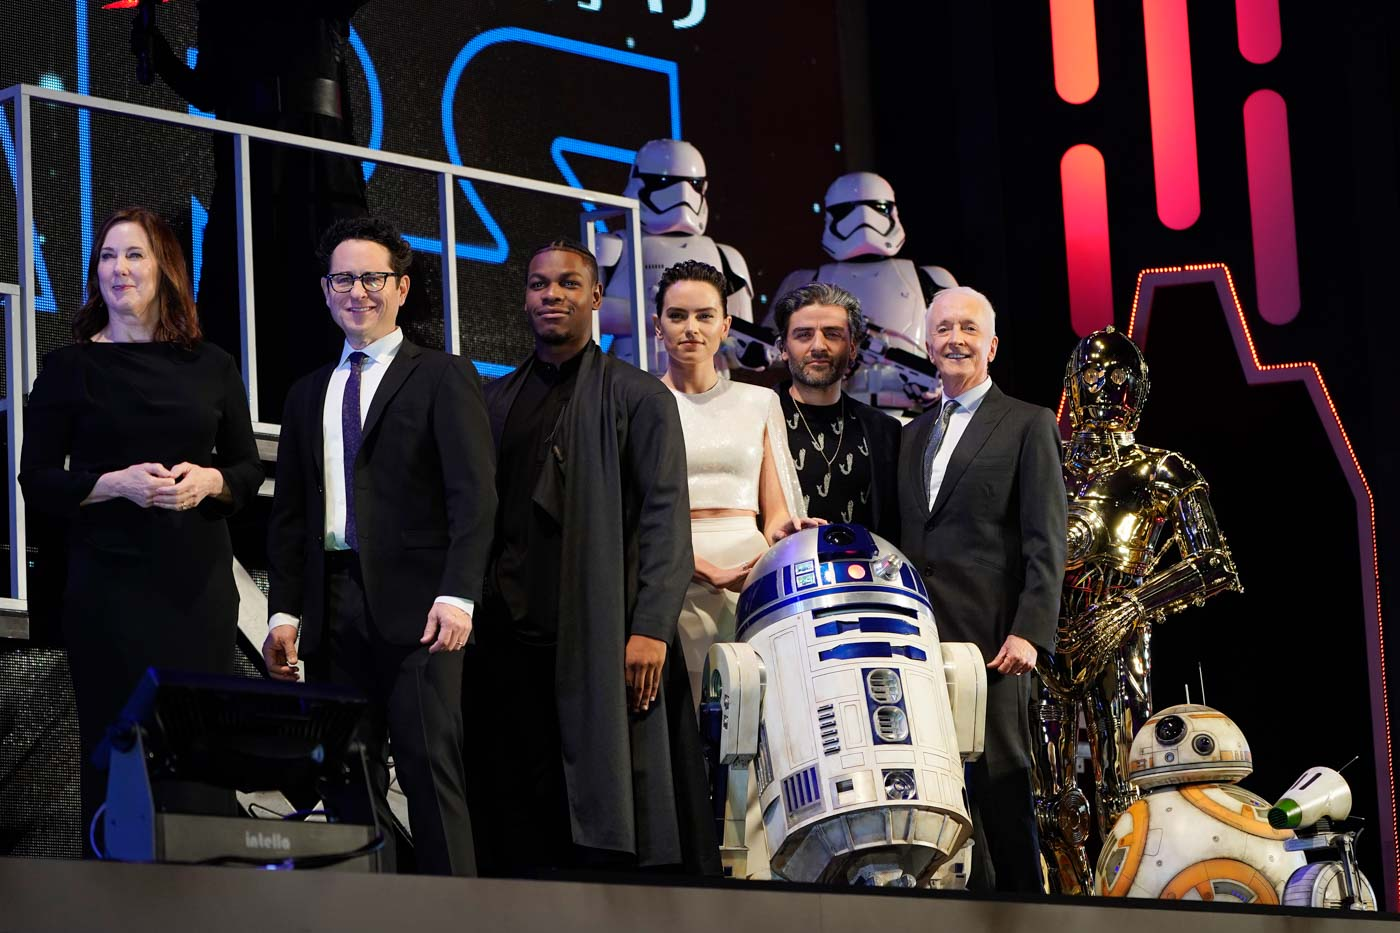 Photo by Christopher Jue/Getty Images for Disney